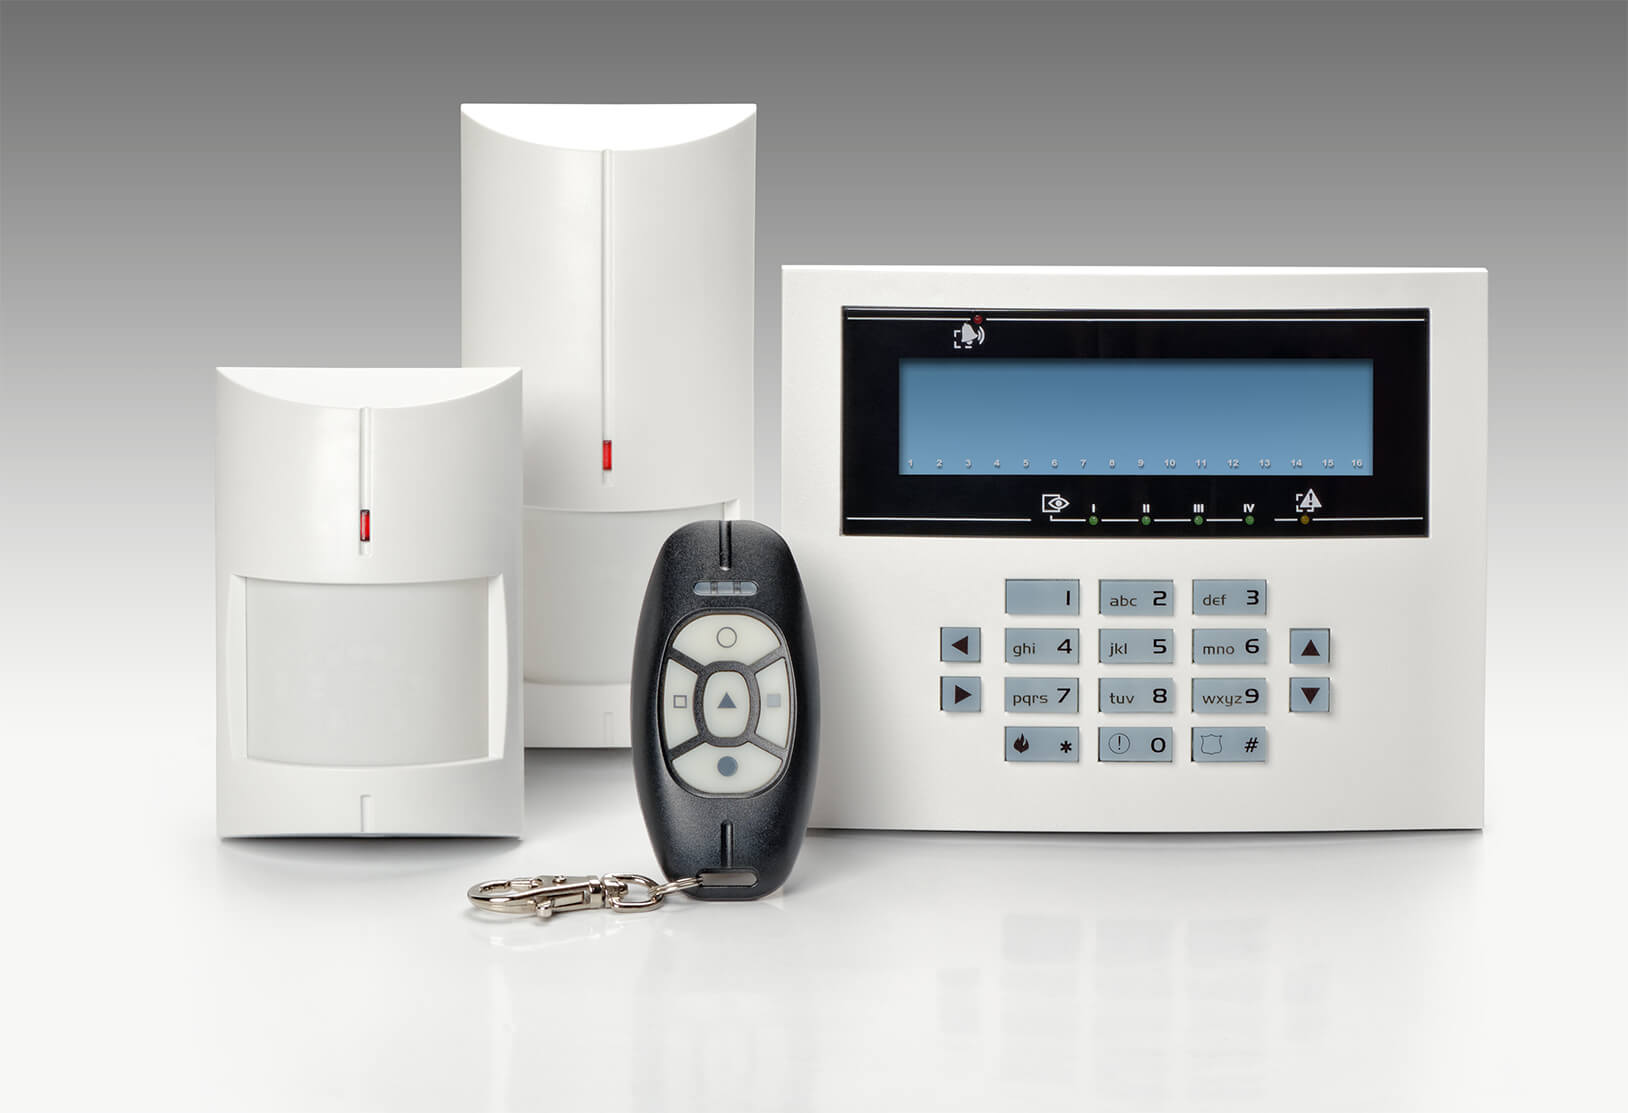 Commercial Burglar Alarms For Business in Manor Park E12  - Local Manor Park E12 burglar alarm company.Call 02078872244 - Dedicated to Safety & Security. Companies, shops and homes ..